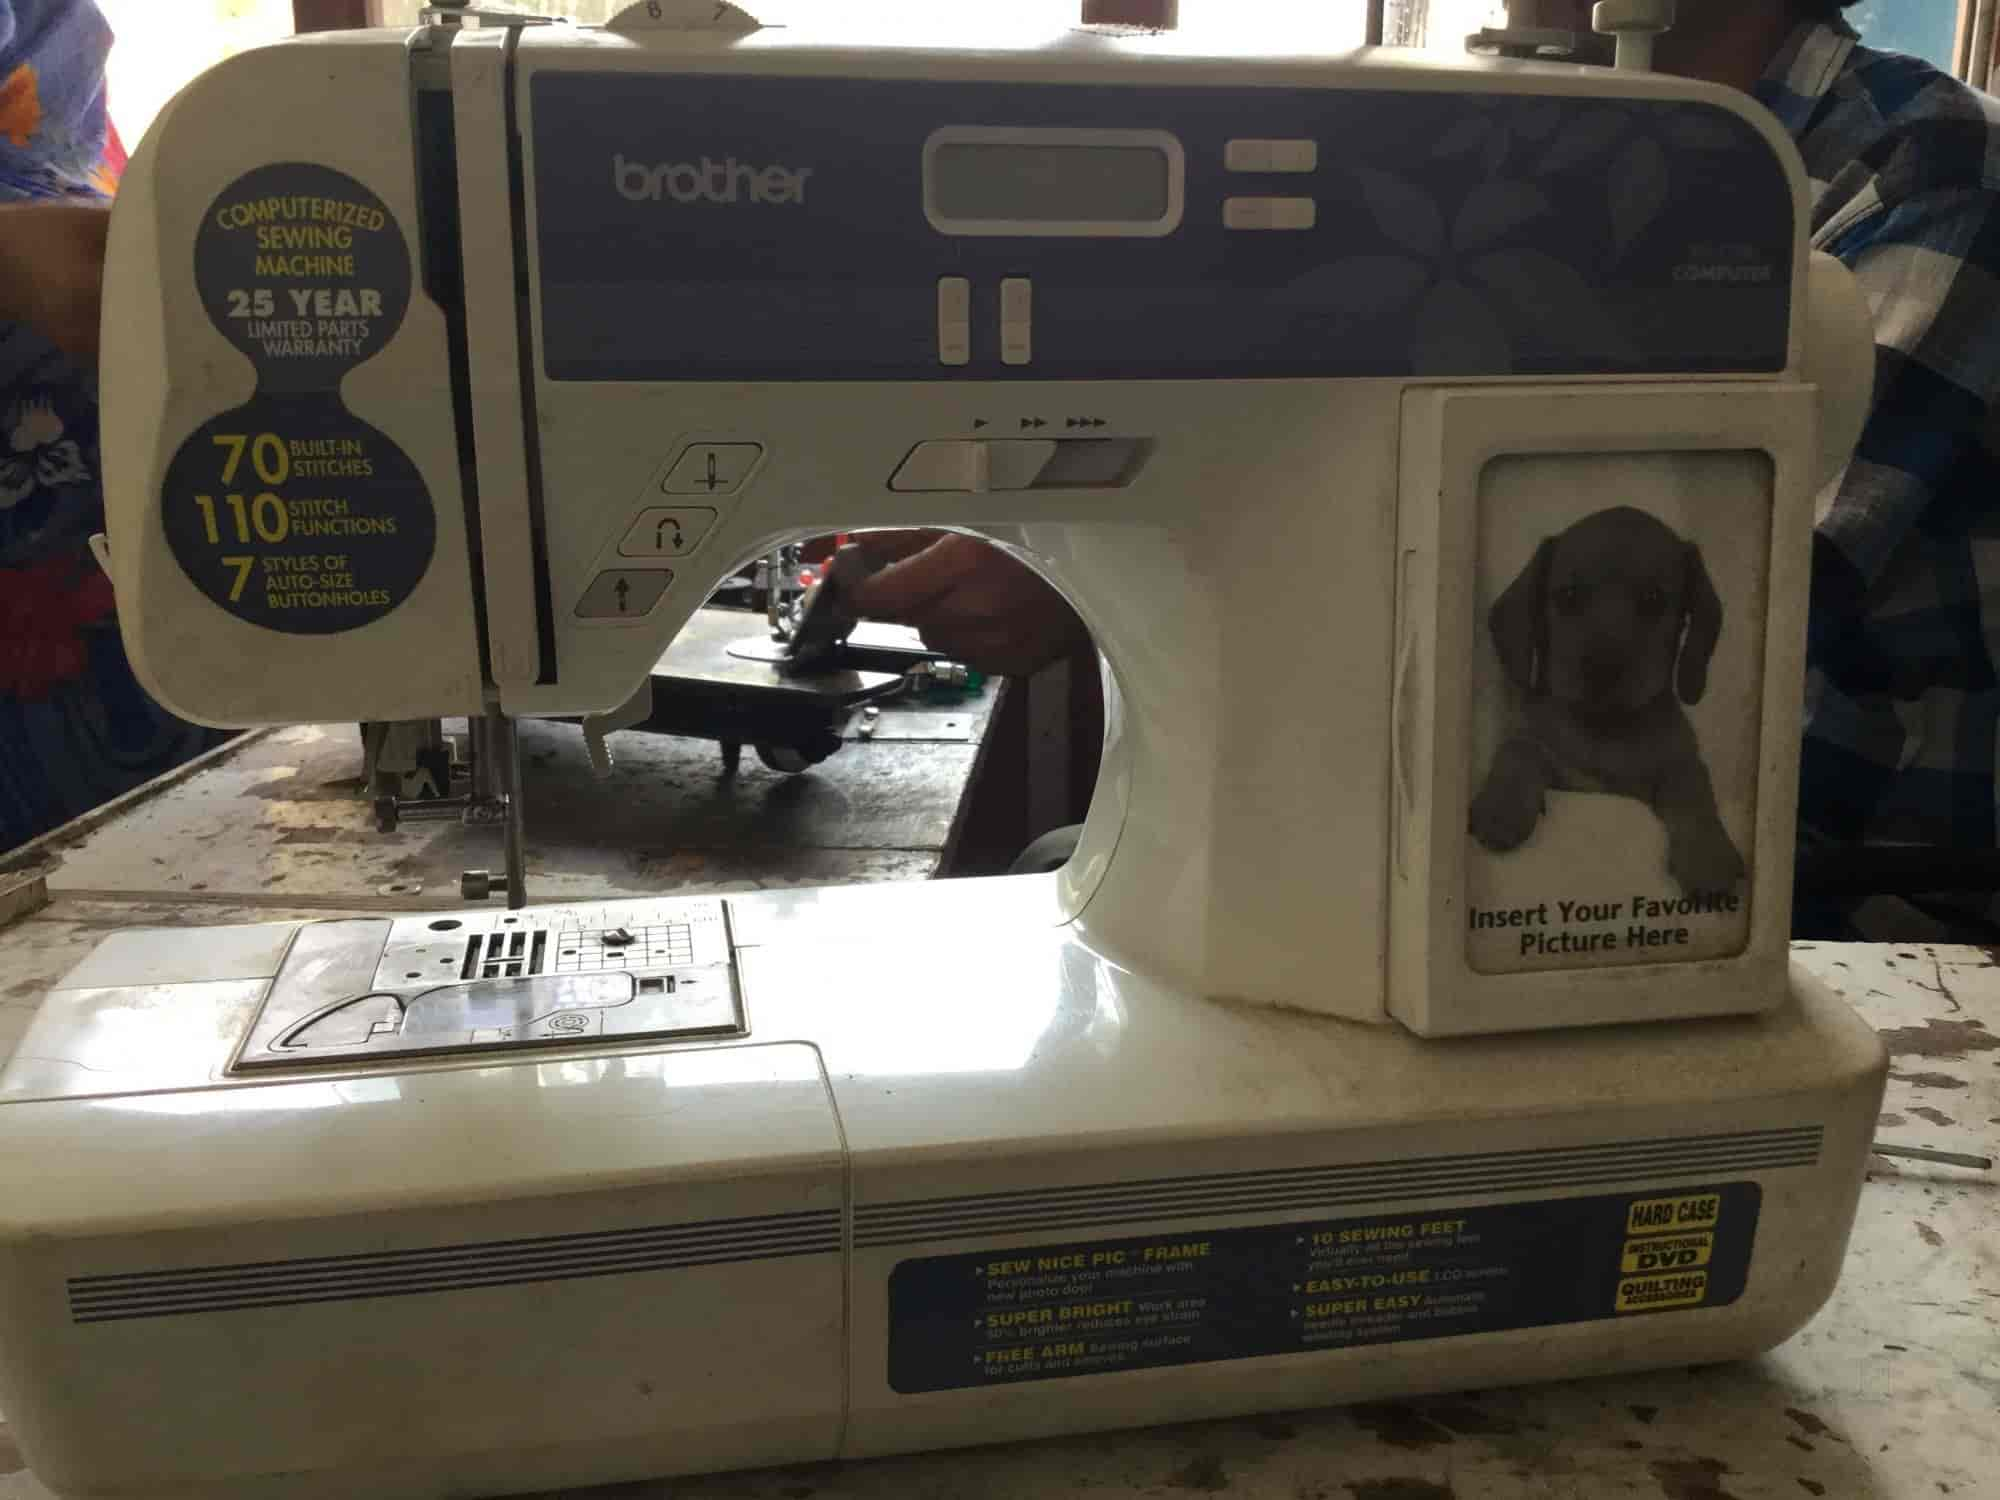 0c6f81595c Soma Sewing Machine Services, Bhagya Nagar Colony Kukatpally - Sewing  Machine Repair & Services in Hyderabad - Justdial